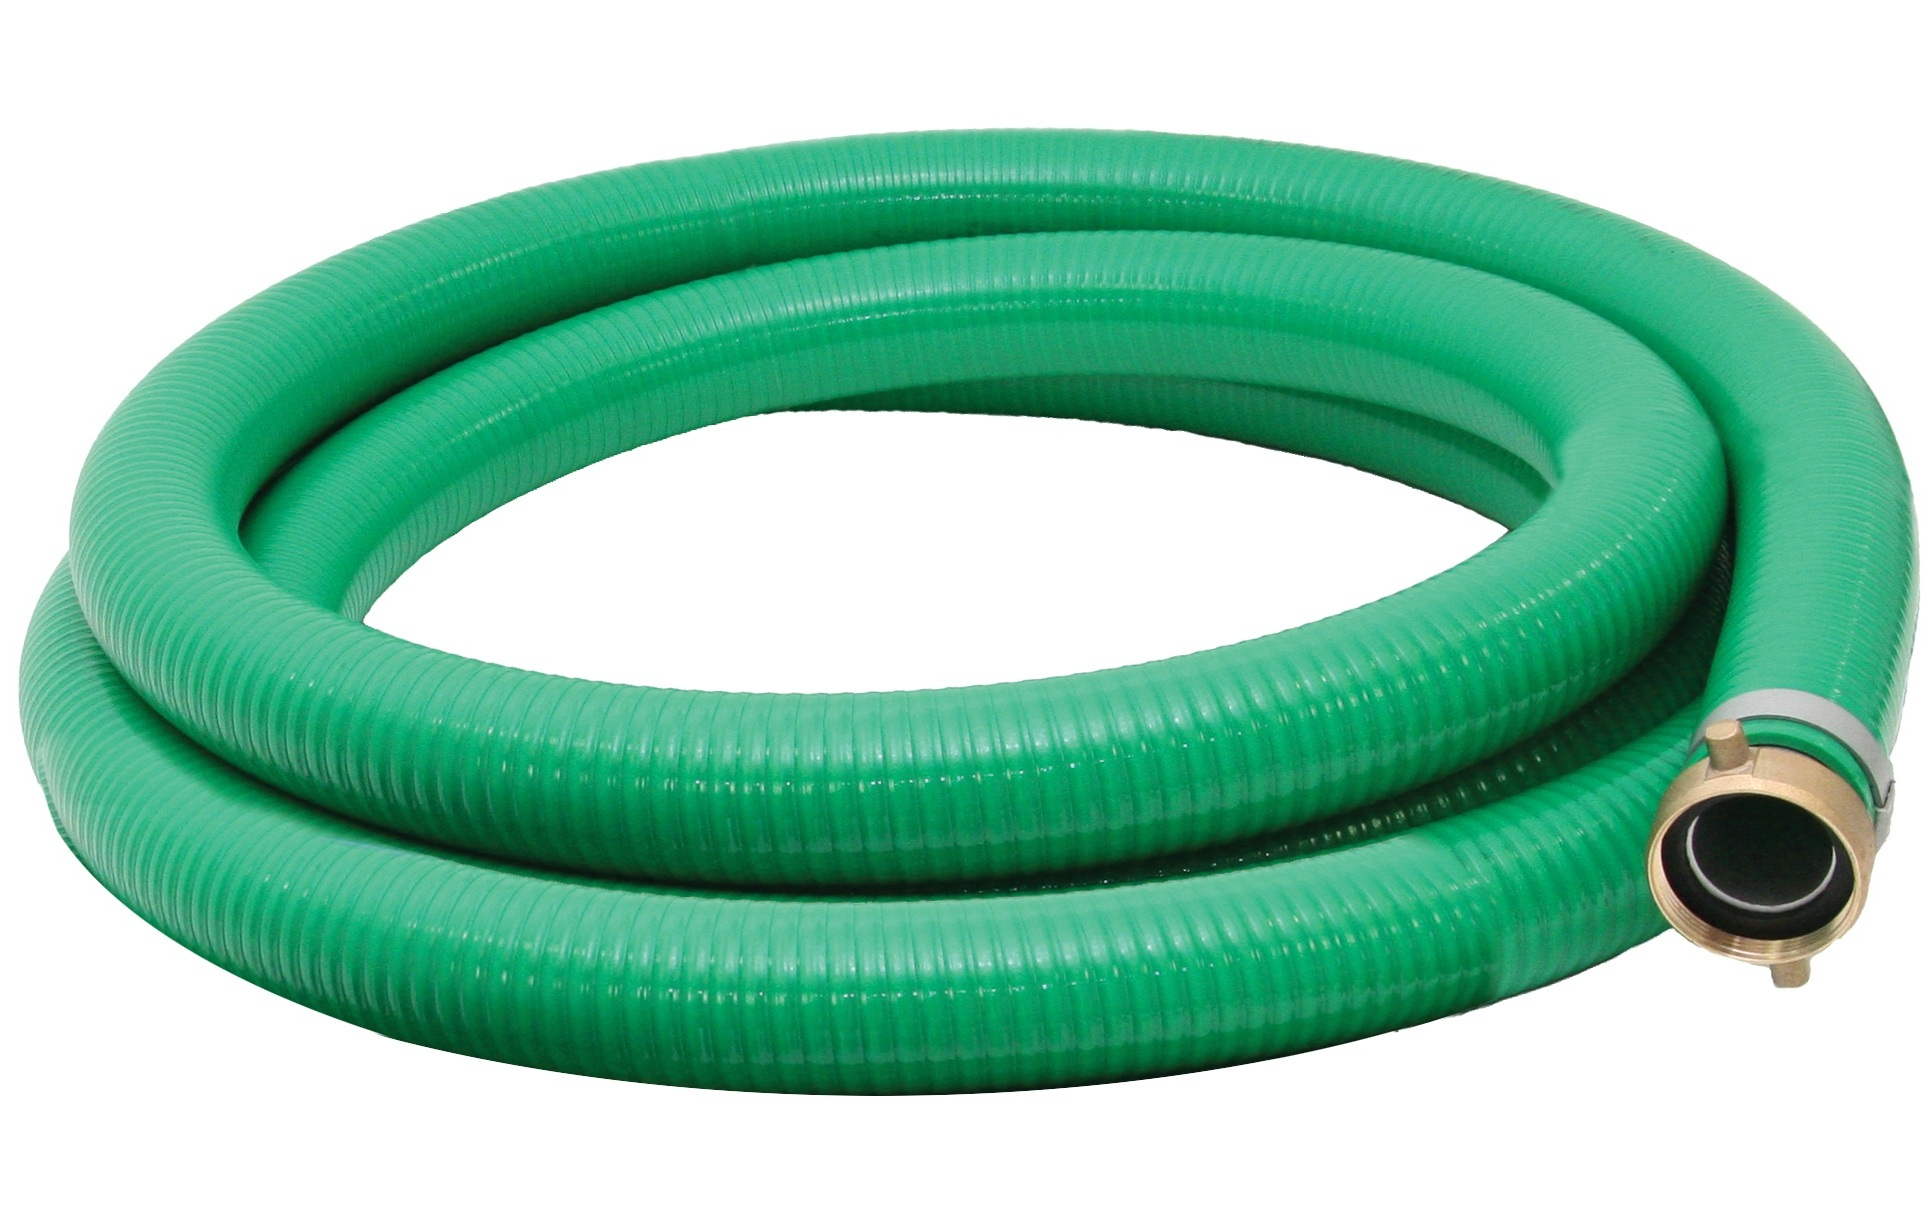 Hose Products - Rubber & PVC Suction & Discharge HoseAir Compressor & Air Tool HoseCouplings & FittingsCamlock Fittings & AdaptersHydraulic Hose & FittingsHose Clamping & Repair ToolsHose GasketsHydrant Adapters